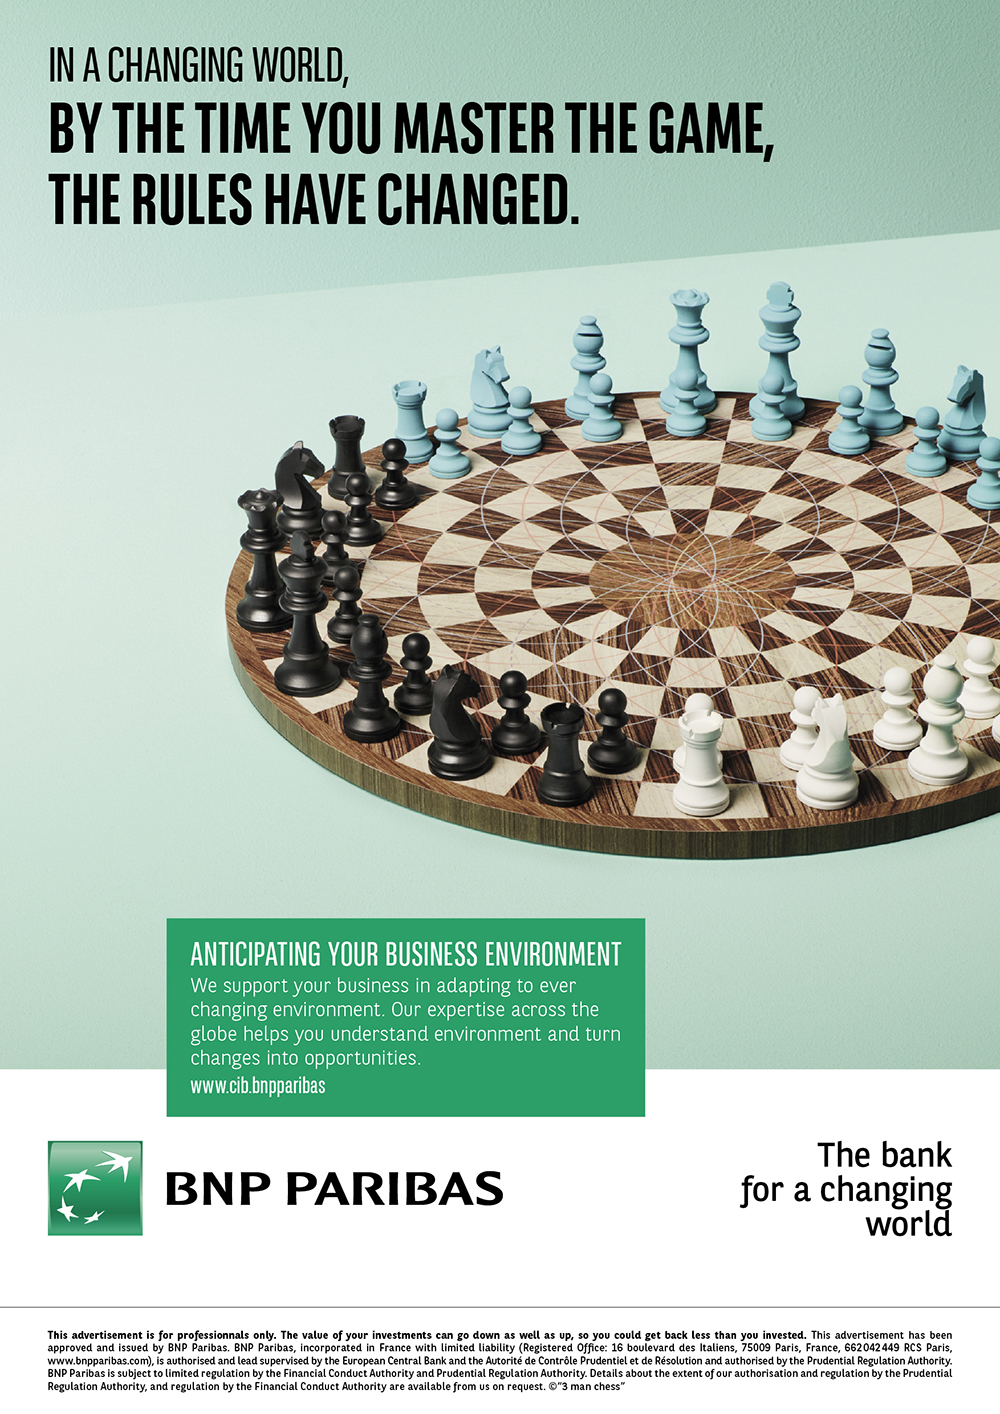 bnp-paribas-publicite-marketing-banque-in-a-changing-world-la-banque-un-monde-qui-change-2015-publicis-conseil-6